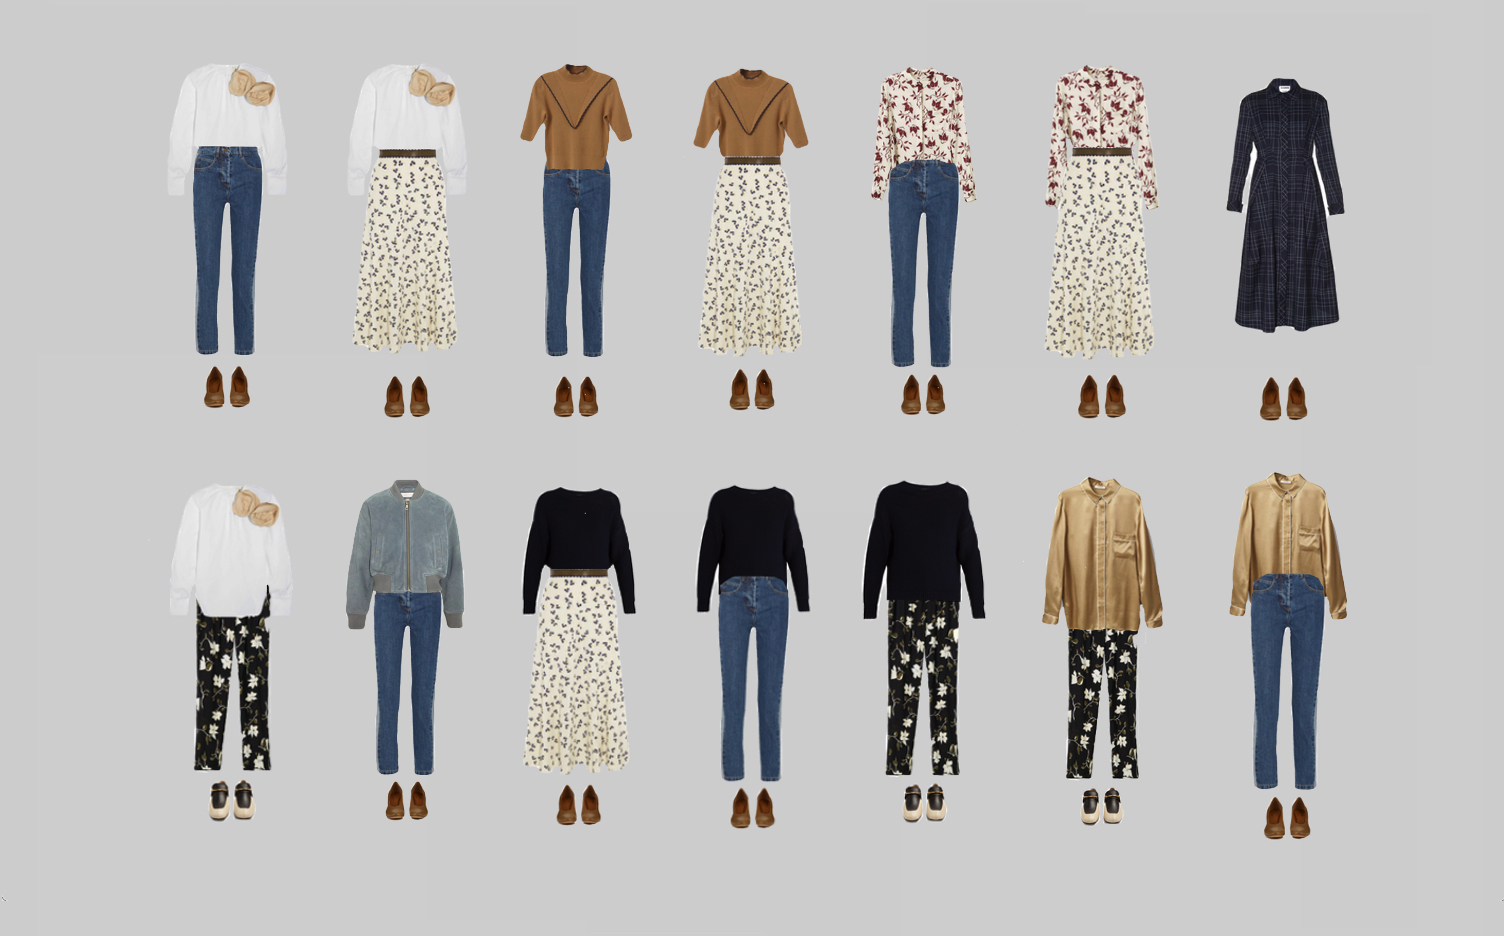 Capsule Wardrobe: 14 outfits.